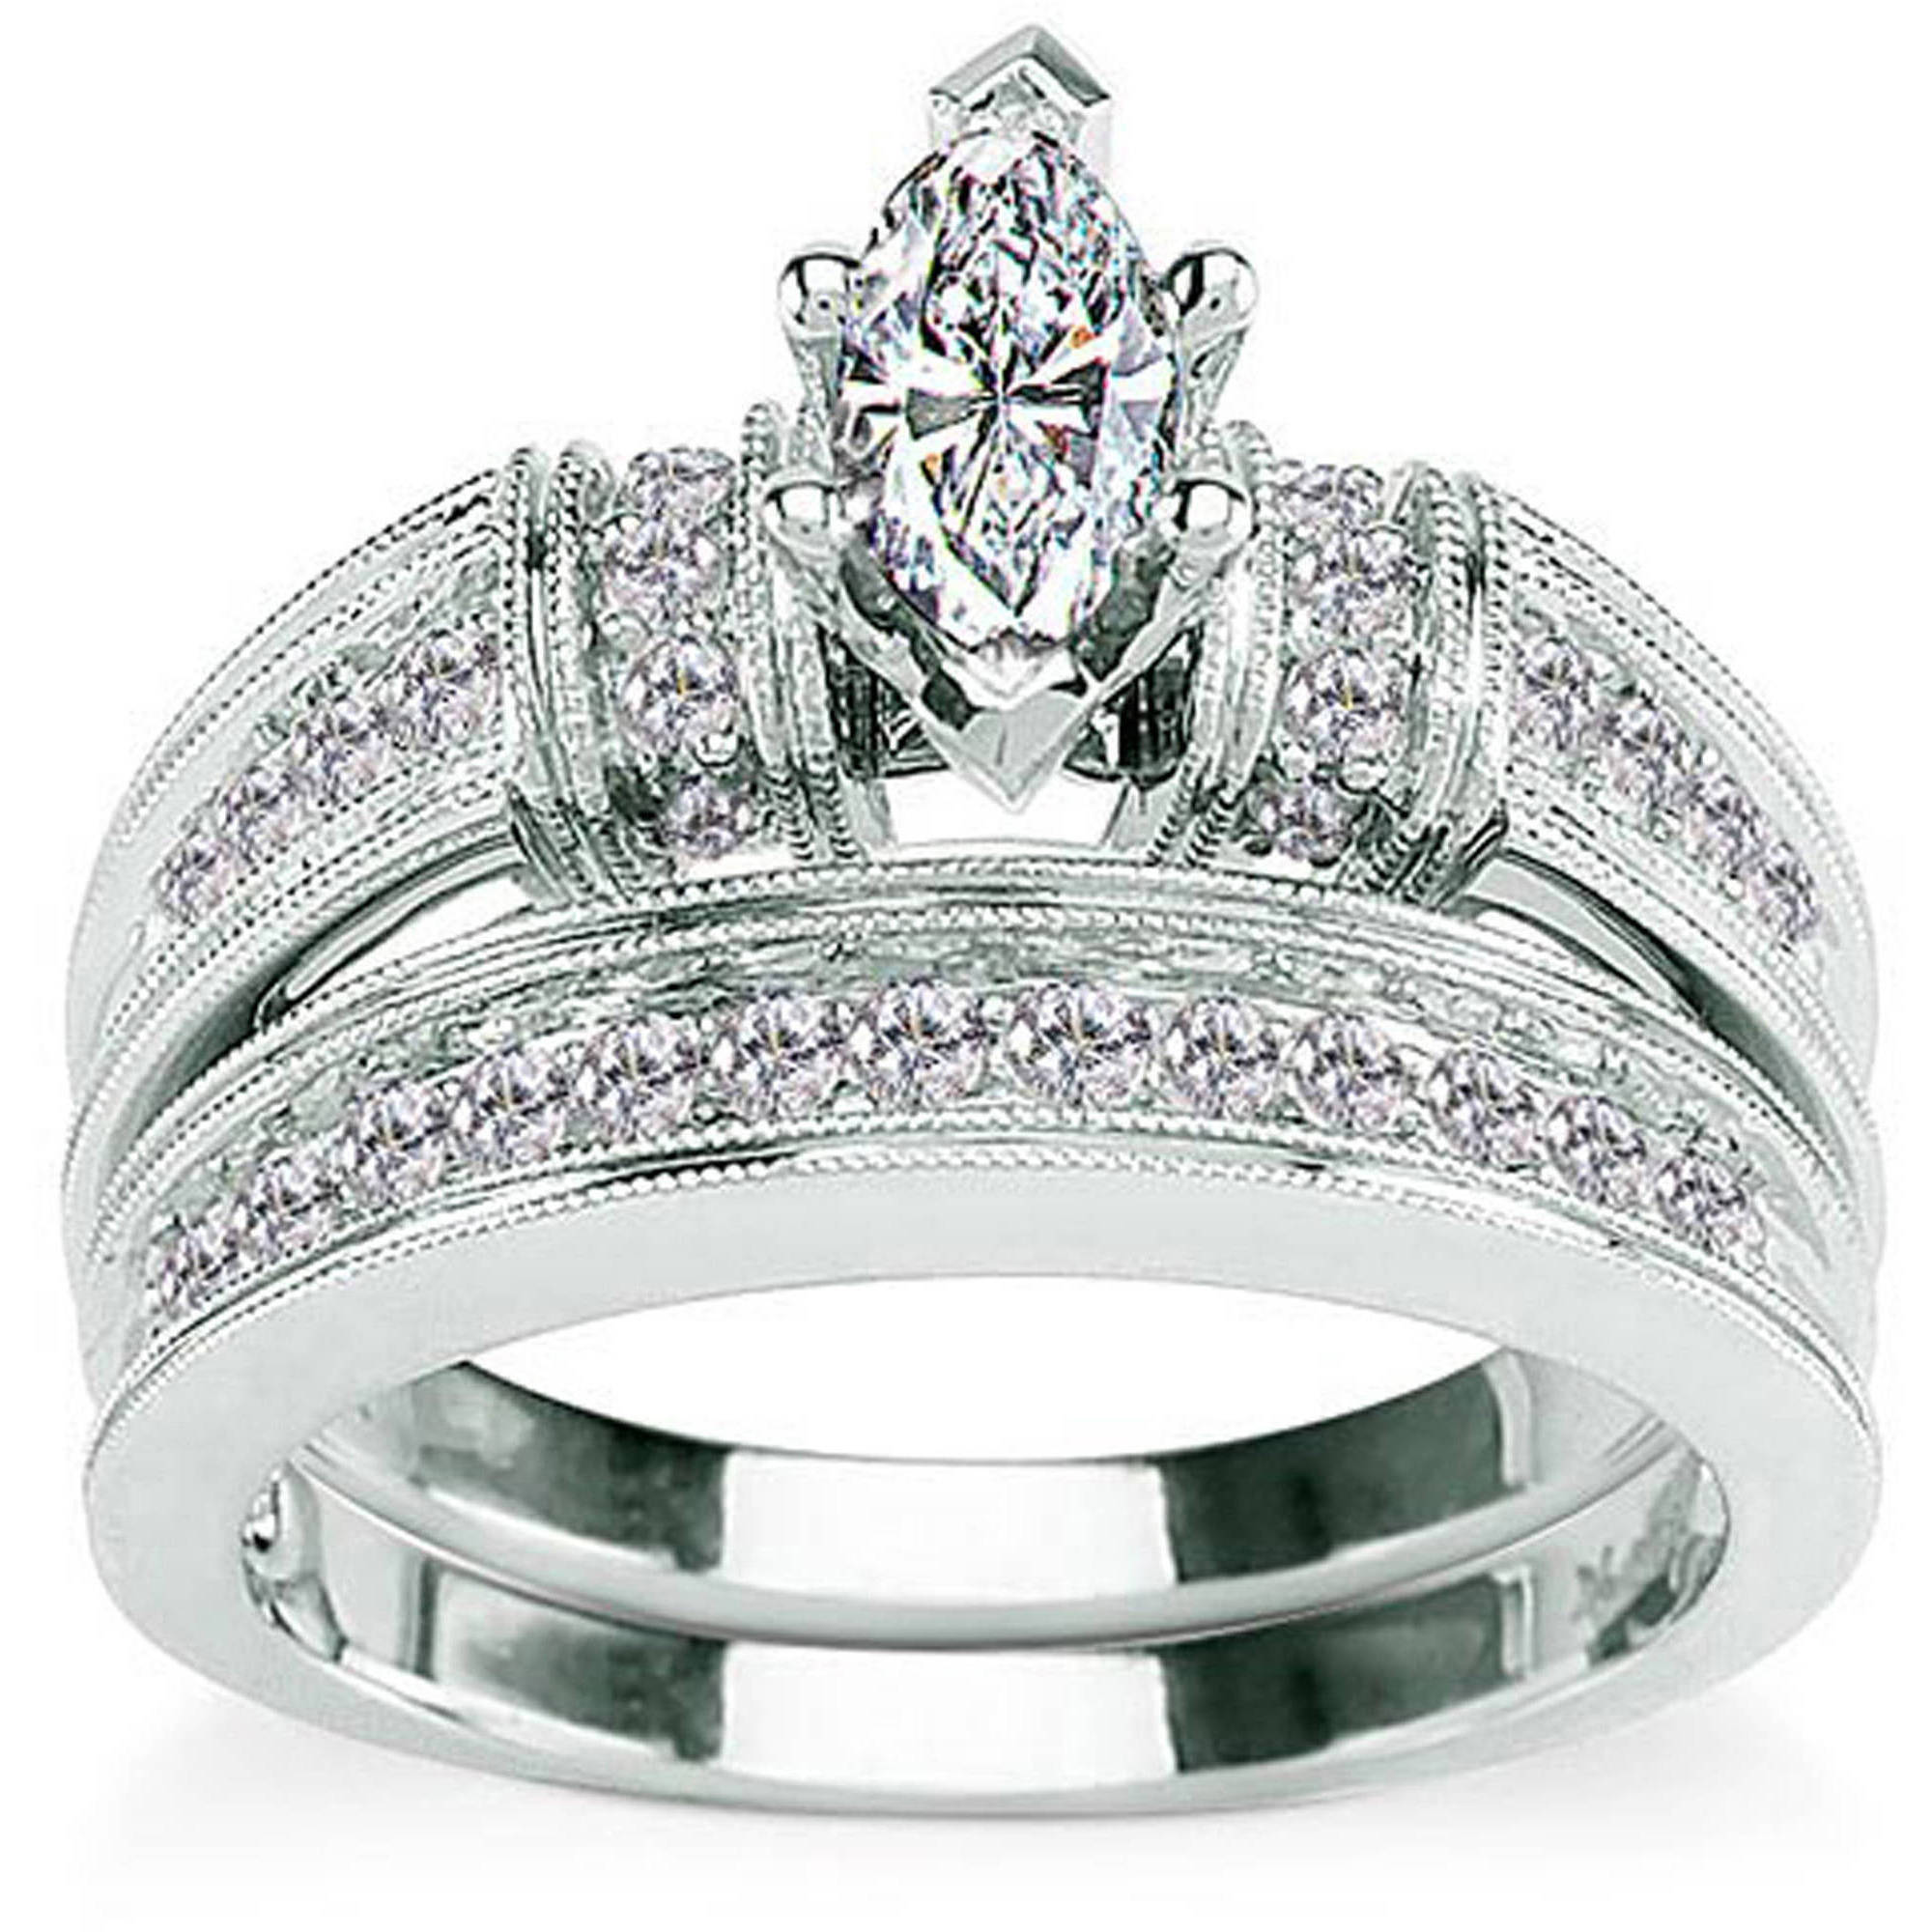 piece your blogs rings diamonds made of engagement see customer a the pictures unique are recently ring articles two you specifications luxe was jewelry custom here is means wholesale for which that